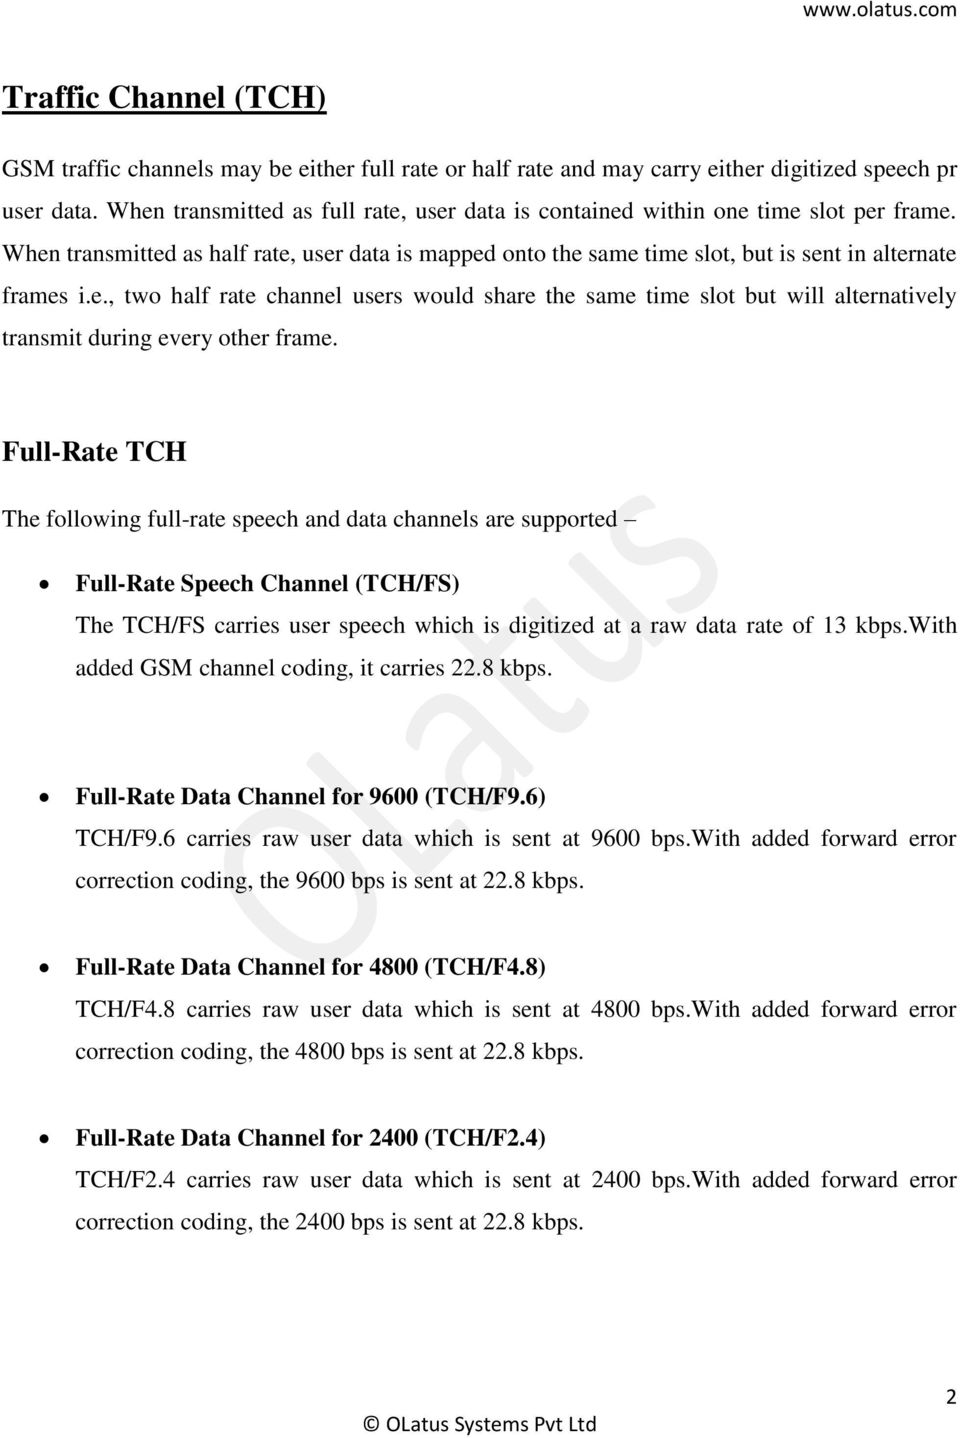 Full-Rate TCH The following full-rate speech and data channels are supported Full-Rate Speech Channel (TCH/FS) The TCH/FS carries user speech which is digitized at a raw data rate of 13 kbps.